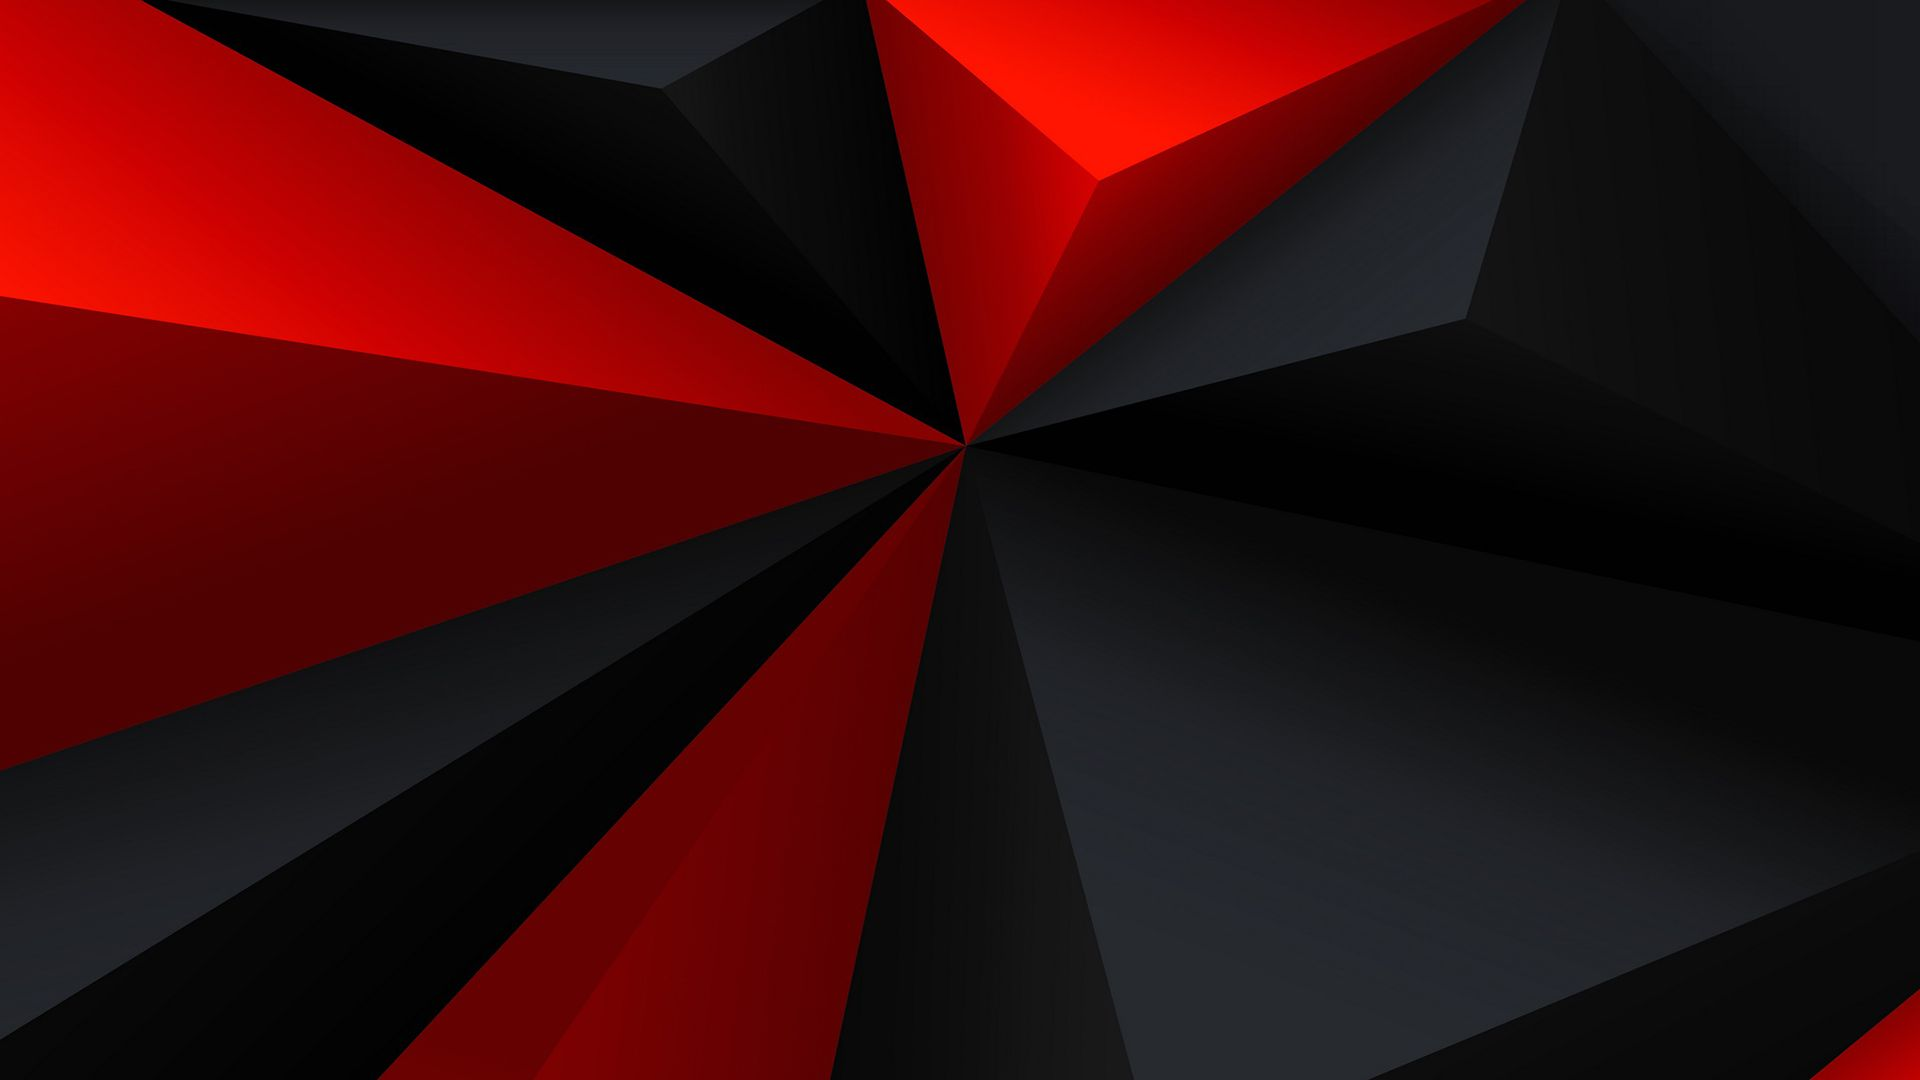 Hd wallpaper red and black - Red Black Wallpaper